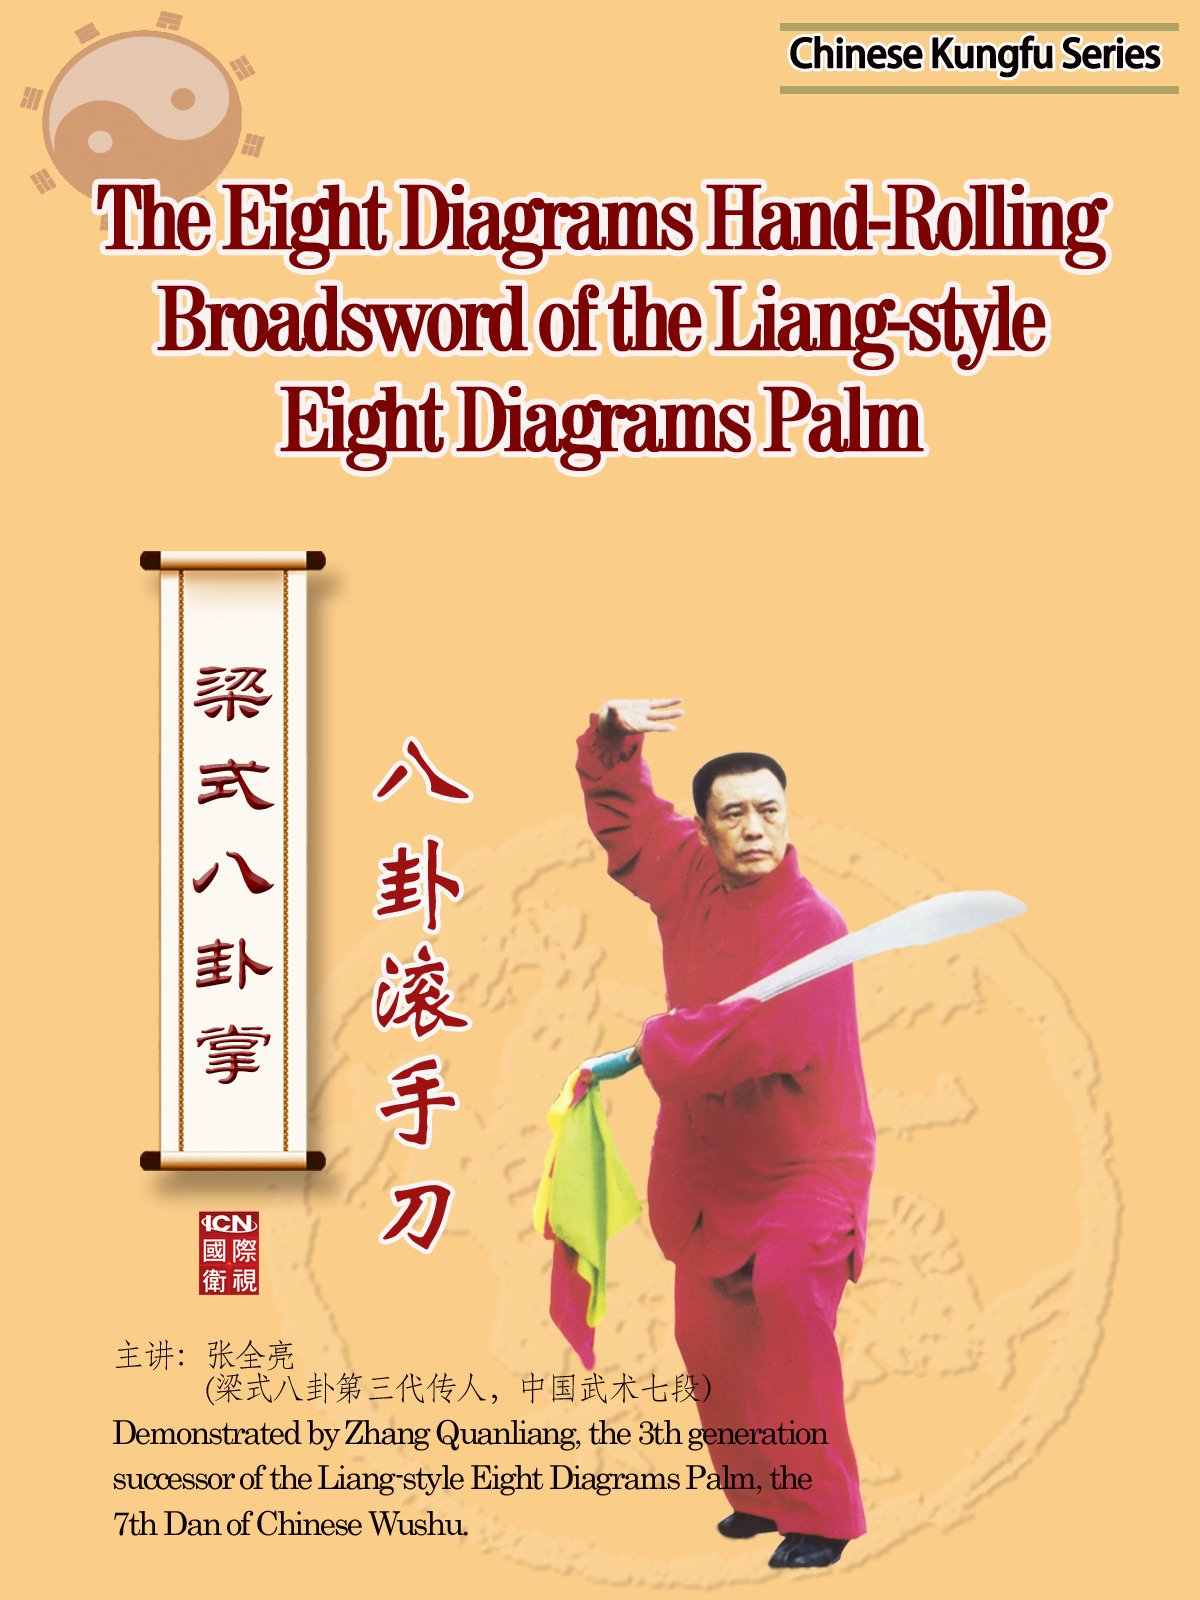 The Eight Diagrams Hand-Rolling Broadsword of the Liang-style Eight Diagrams Palm(Demonstrated by Zhang Quanliang)